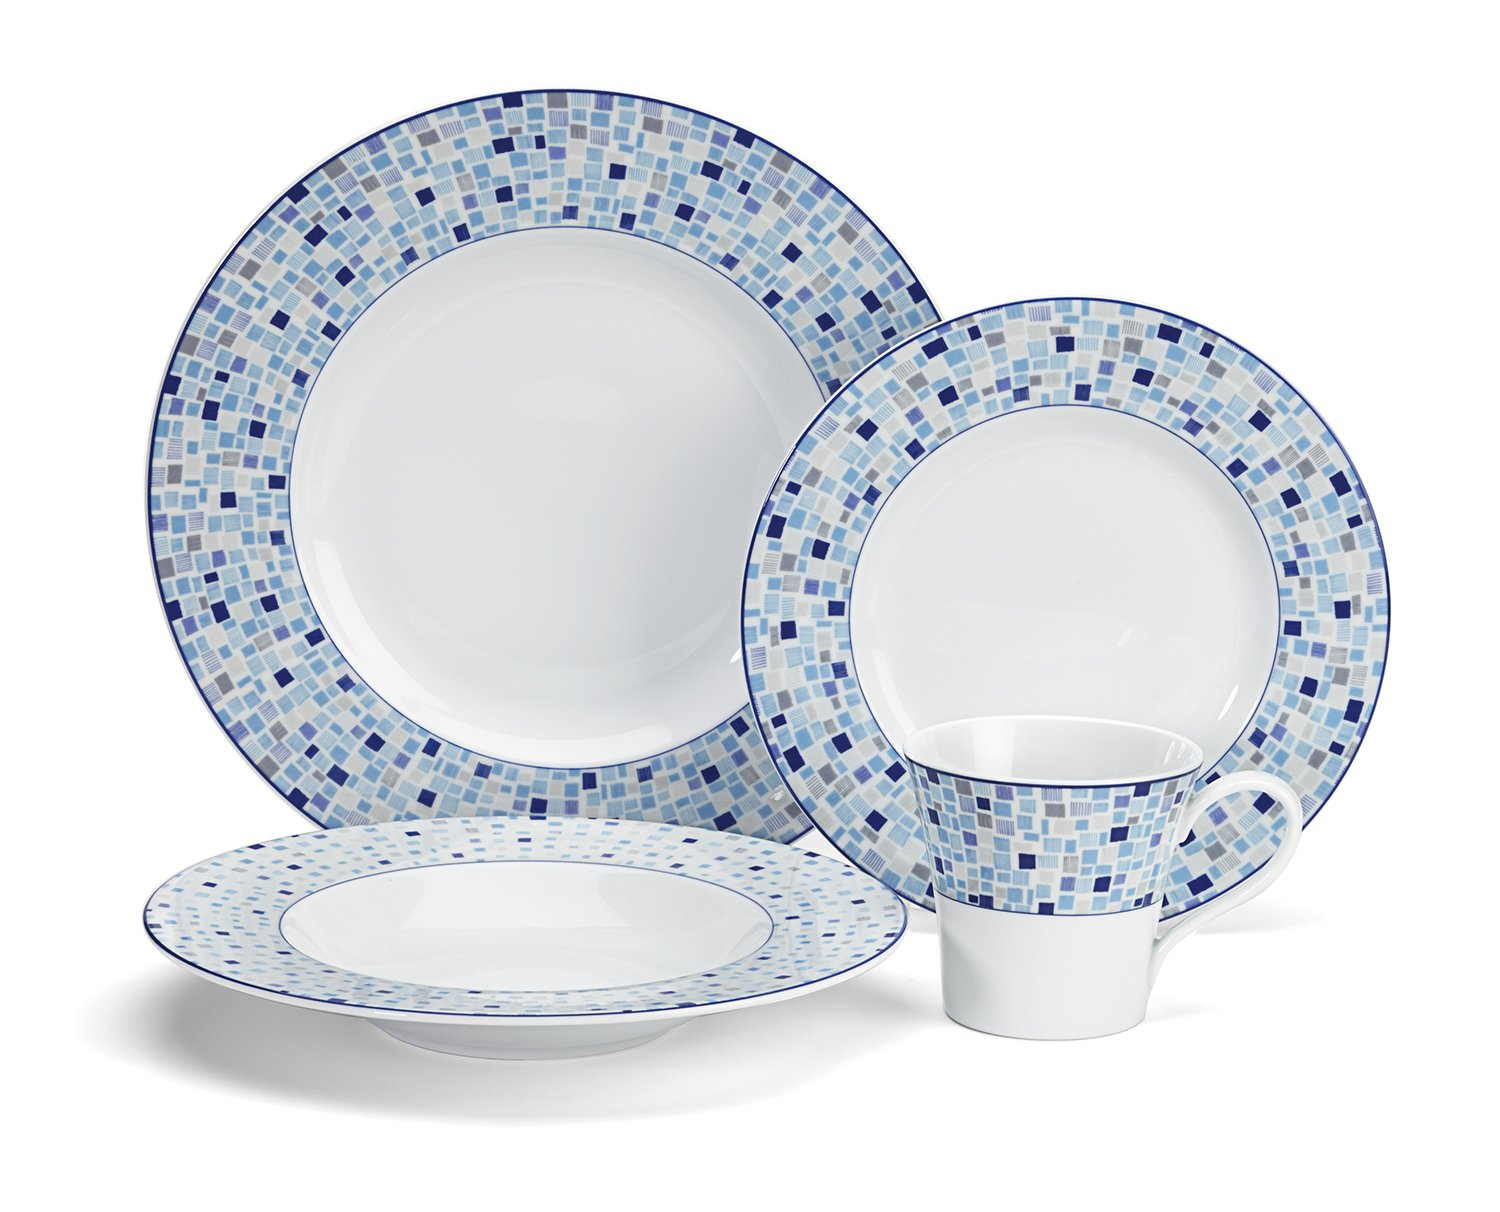 amazoncom  cuisinart aleria collection piece porcelain  - amazoncom  cuisinart aleria collection piece porcelain dinnerware setserveware accessories